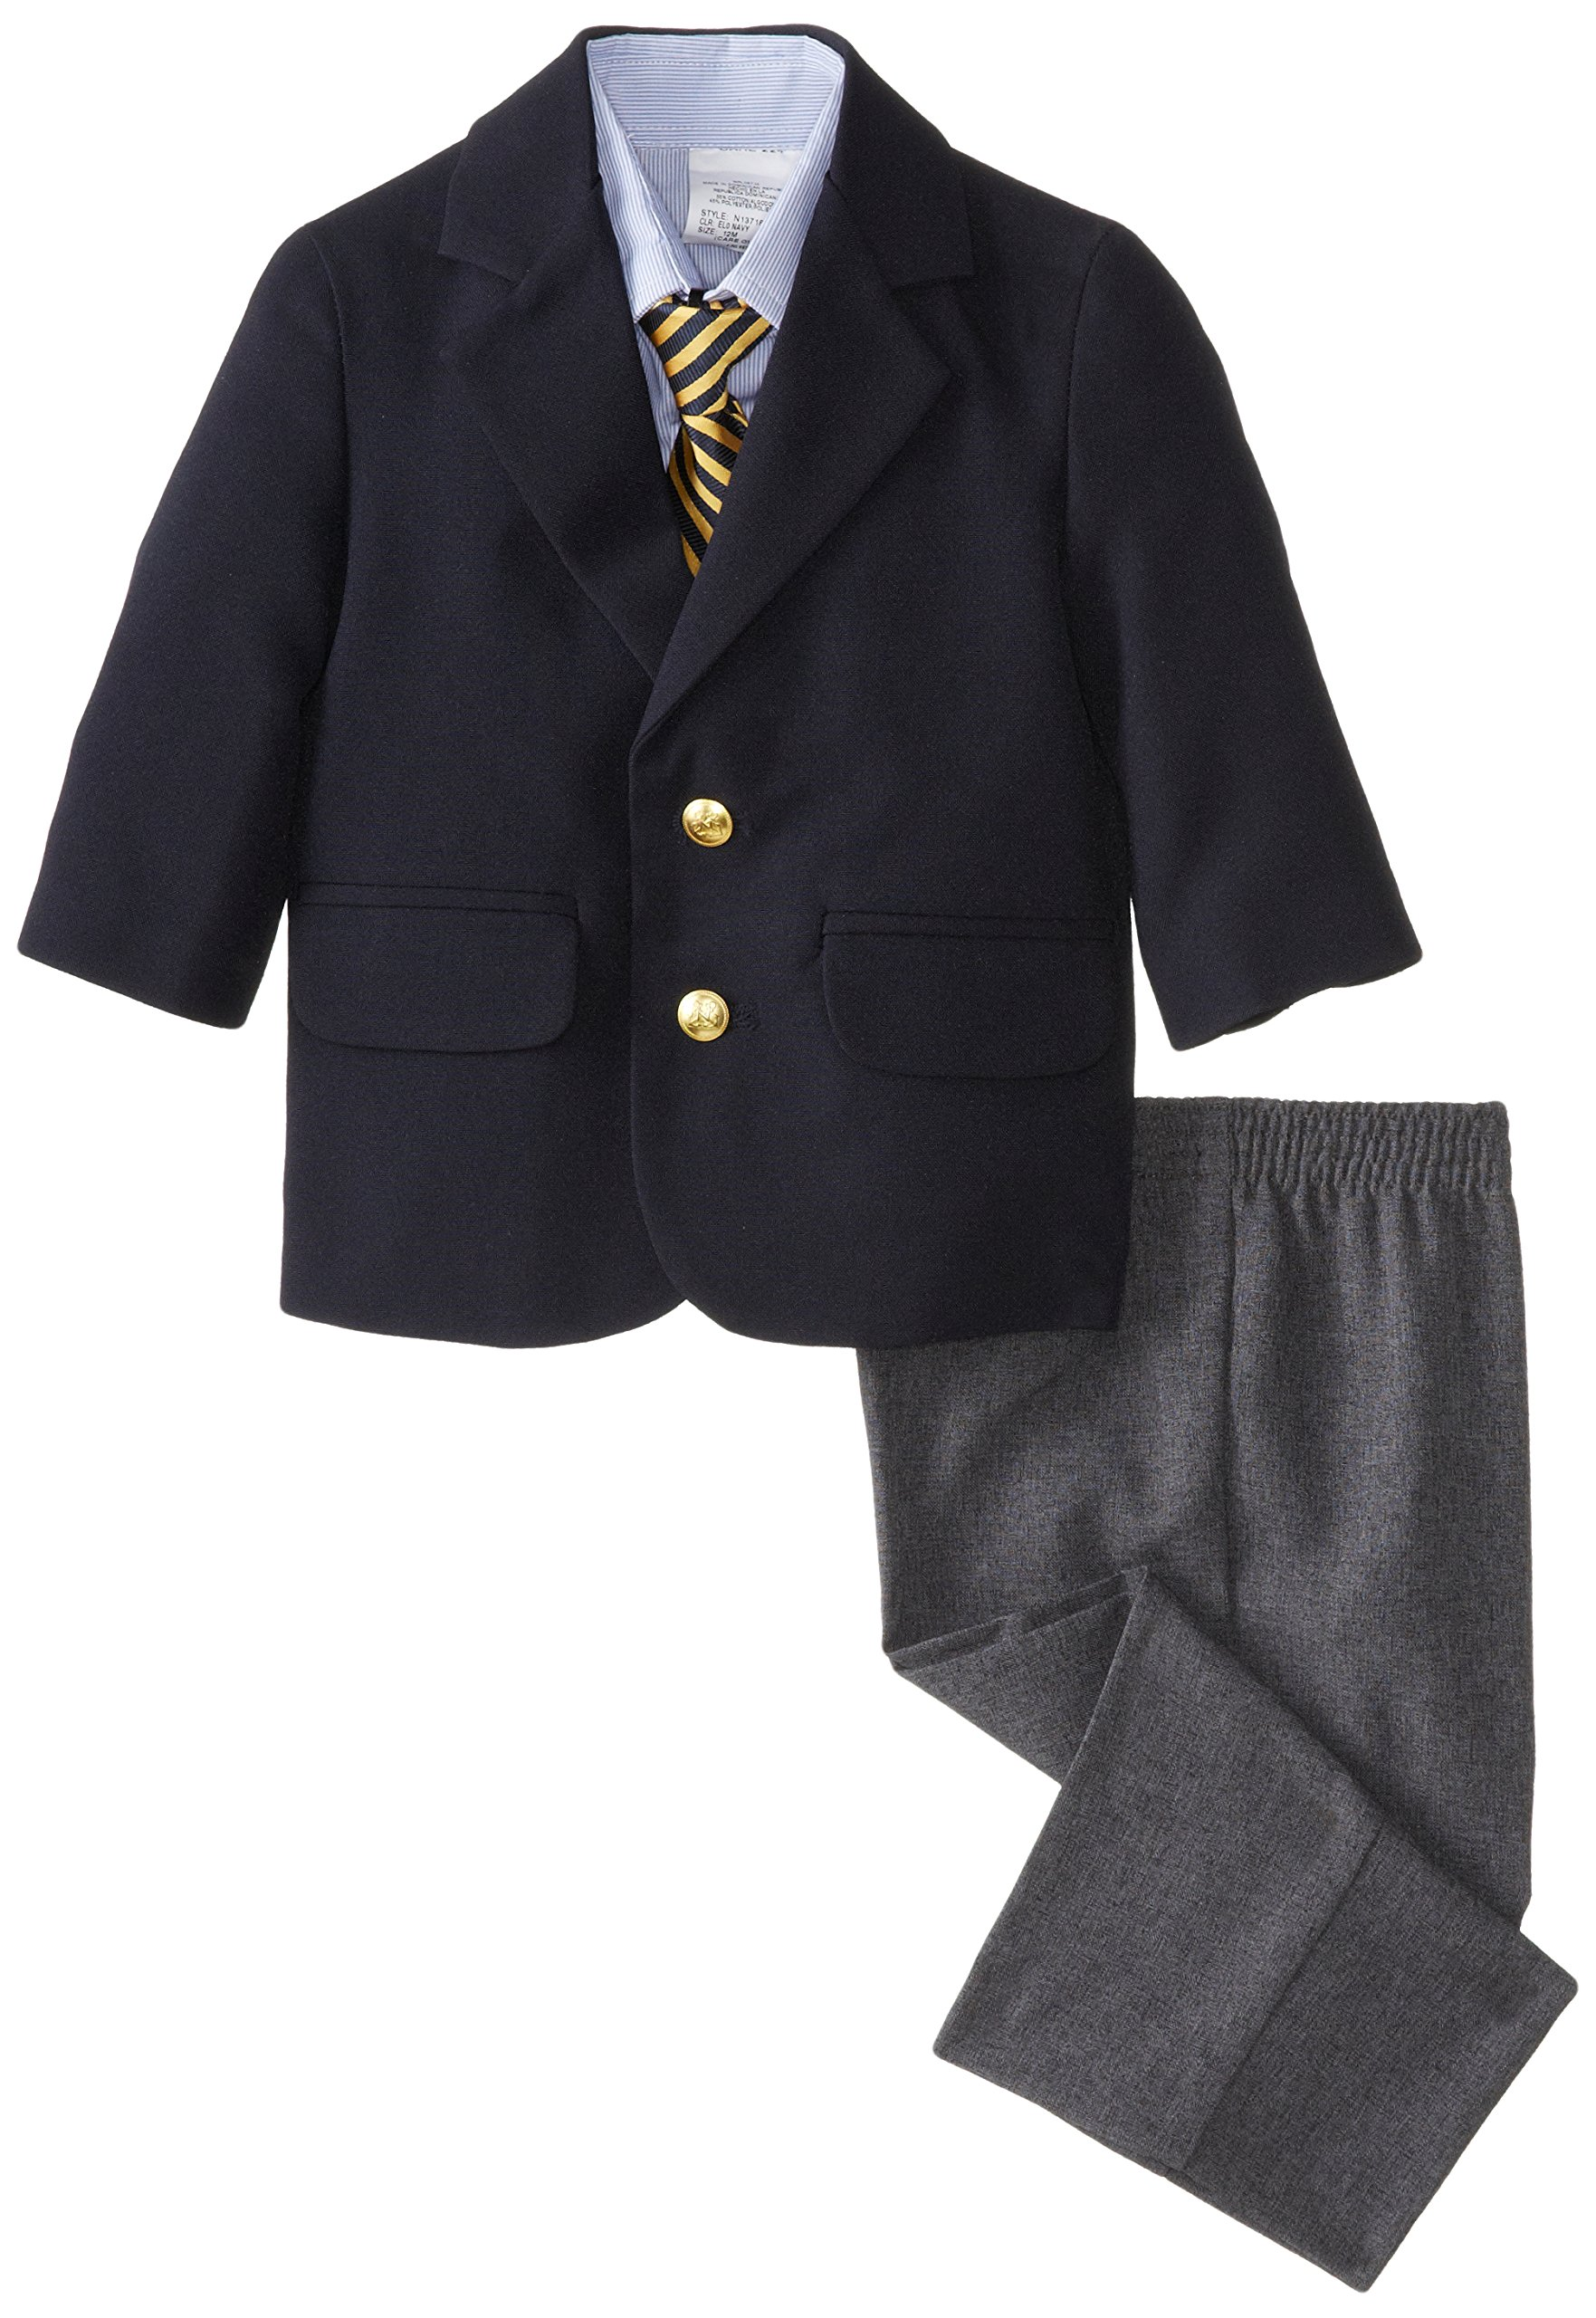 Nautica Boys' 4-Piece Suit Set with Dress Shirt, Tie, Jacket, and Pants, Classic Navy, 18 Months by Nautica